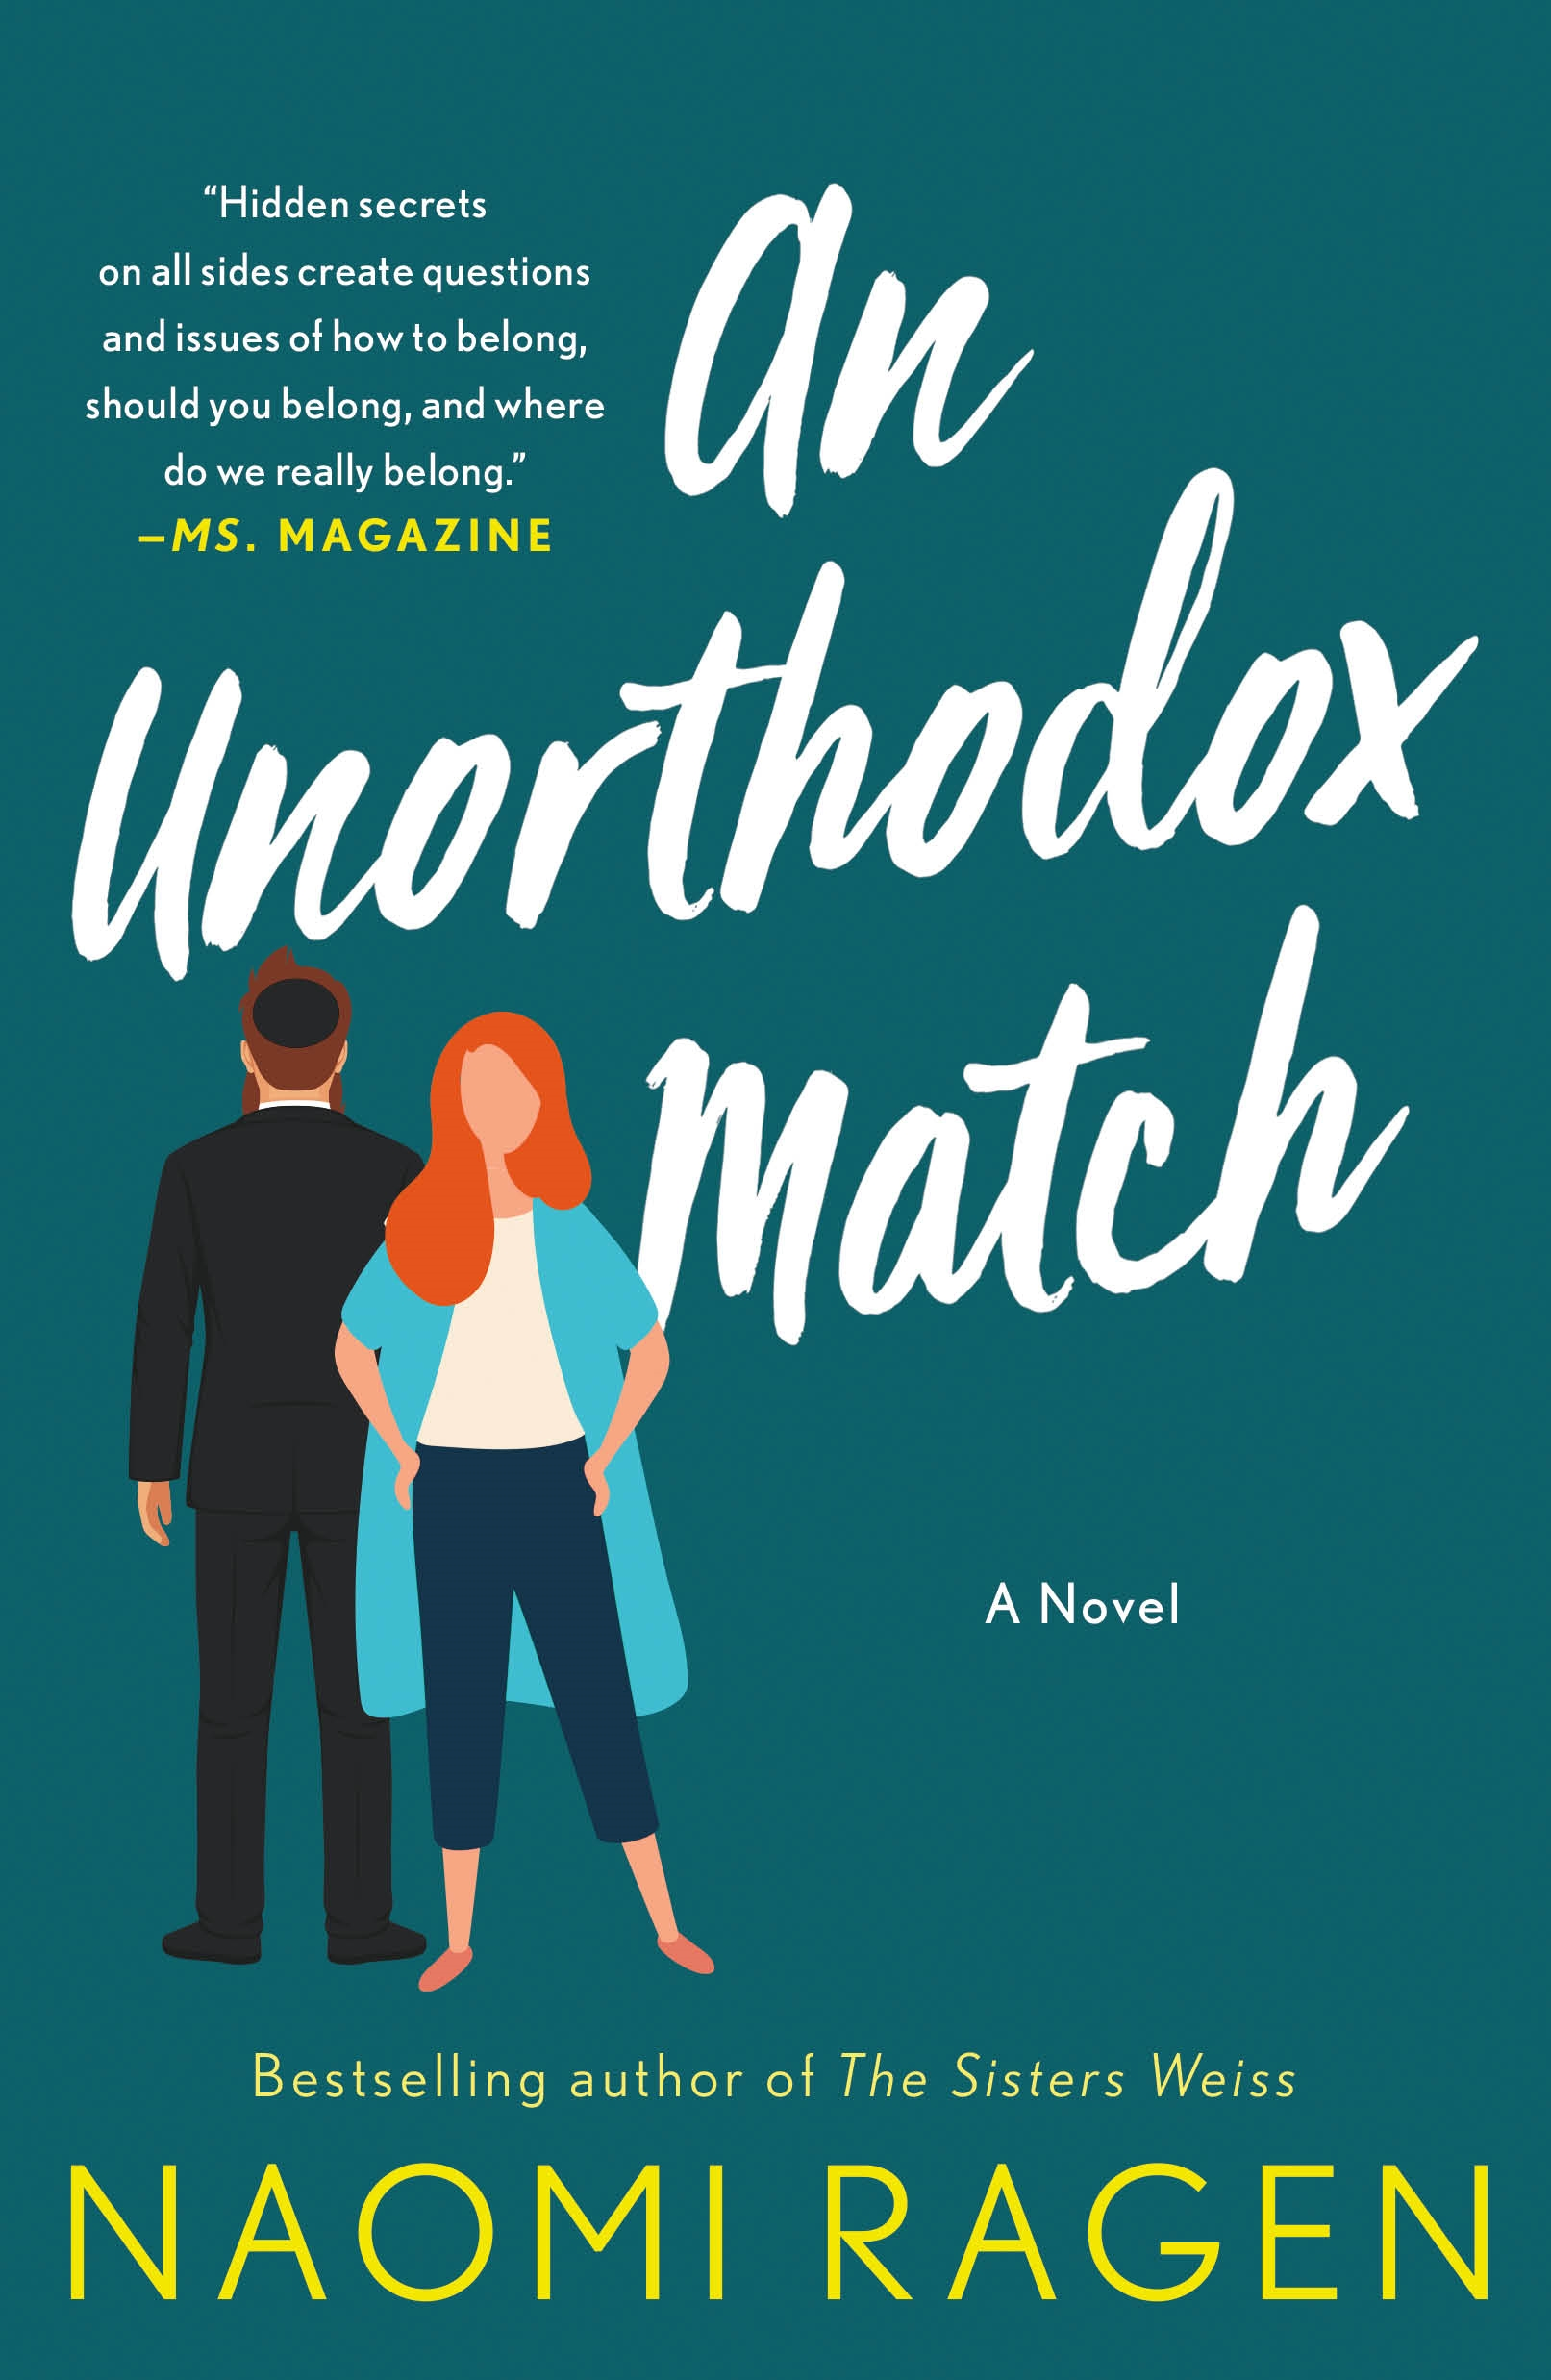 An unorthodox match cover image